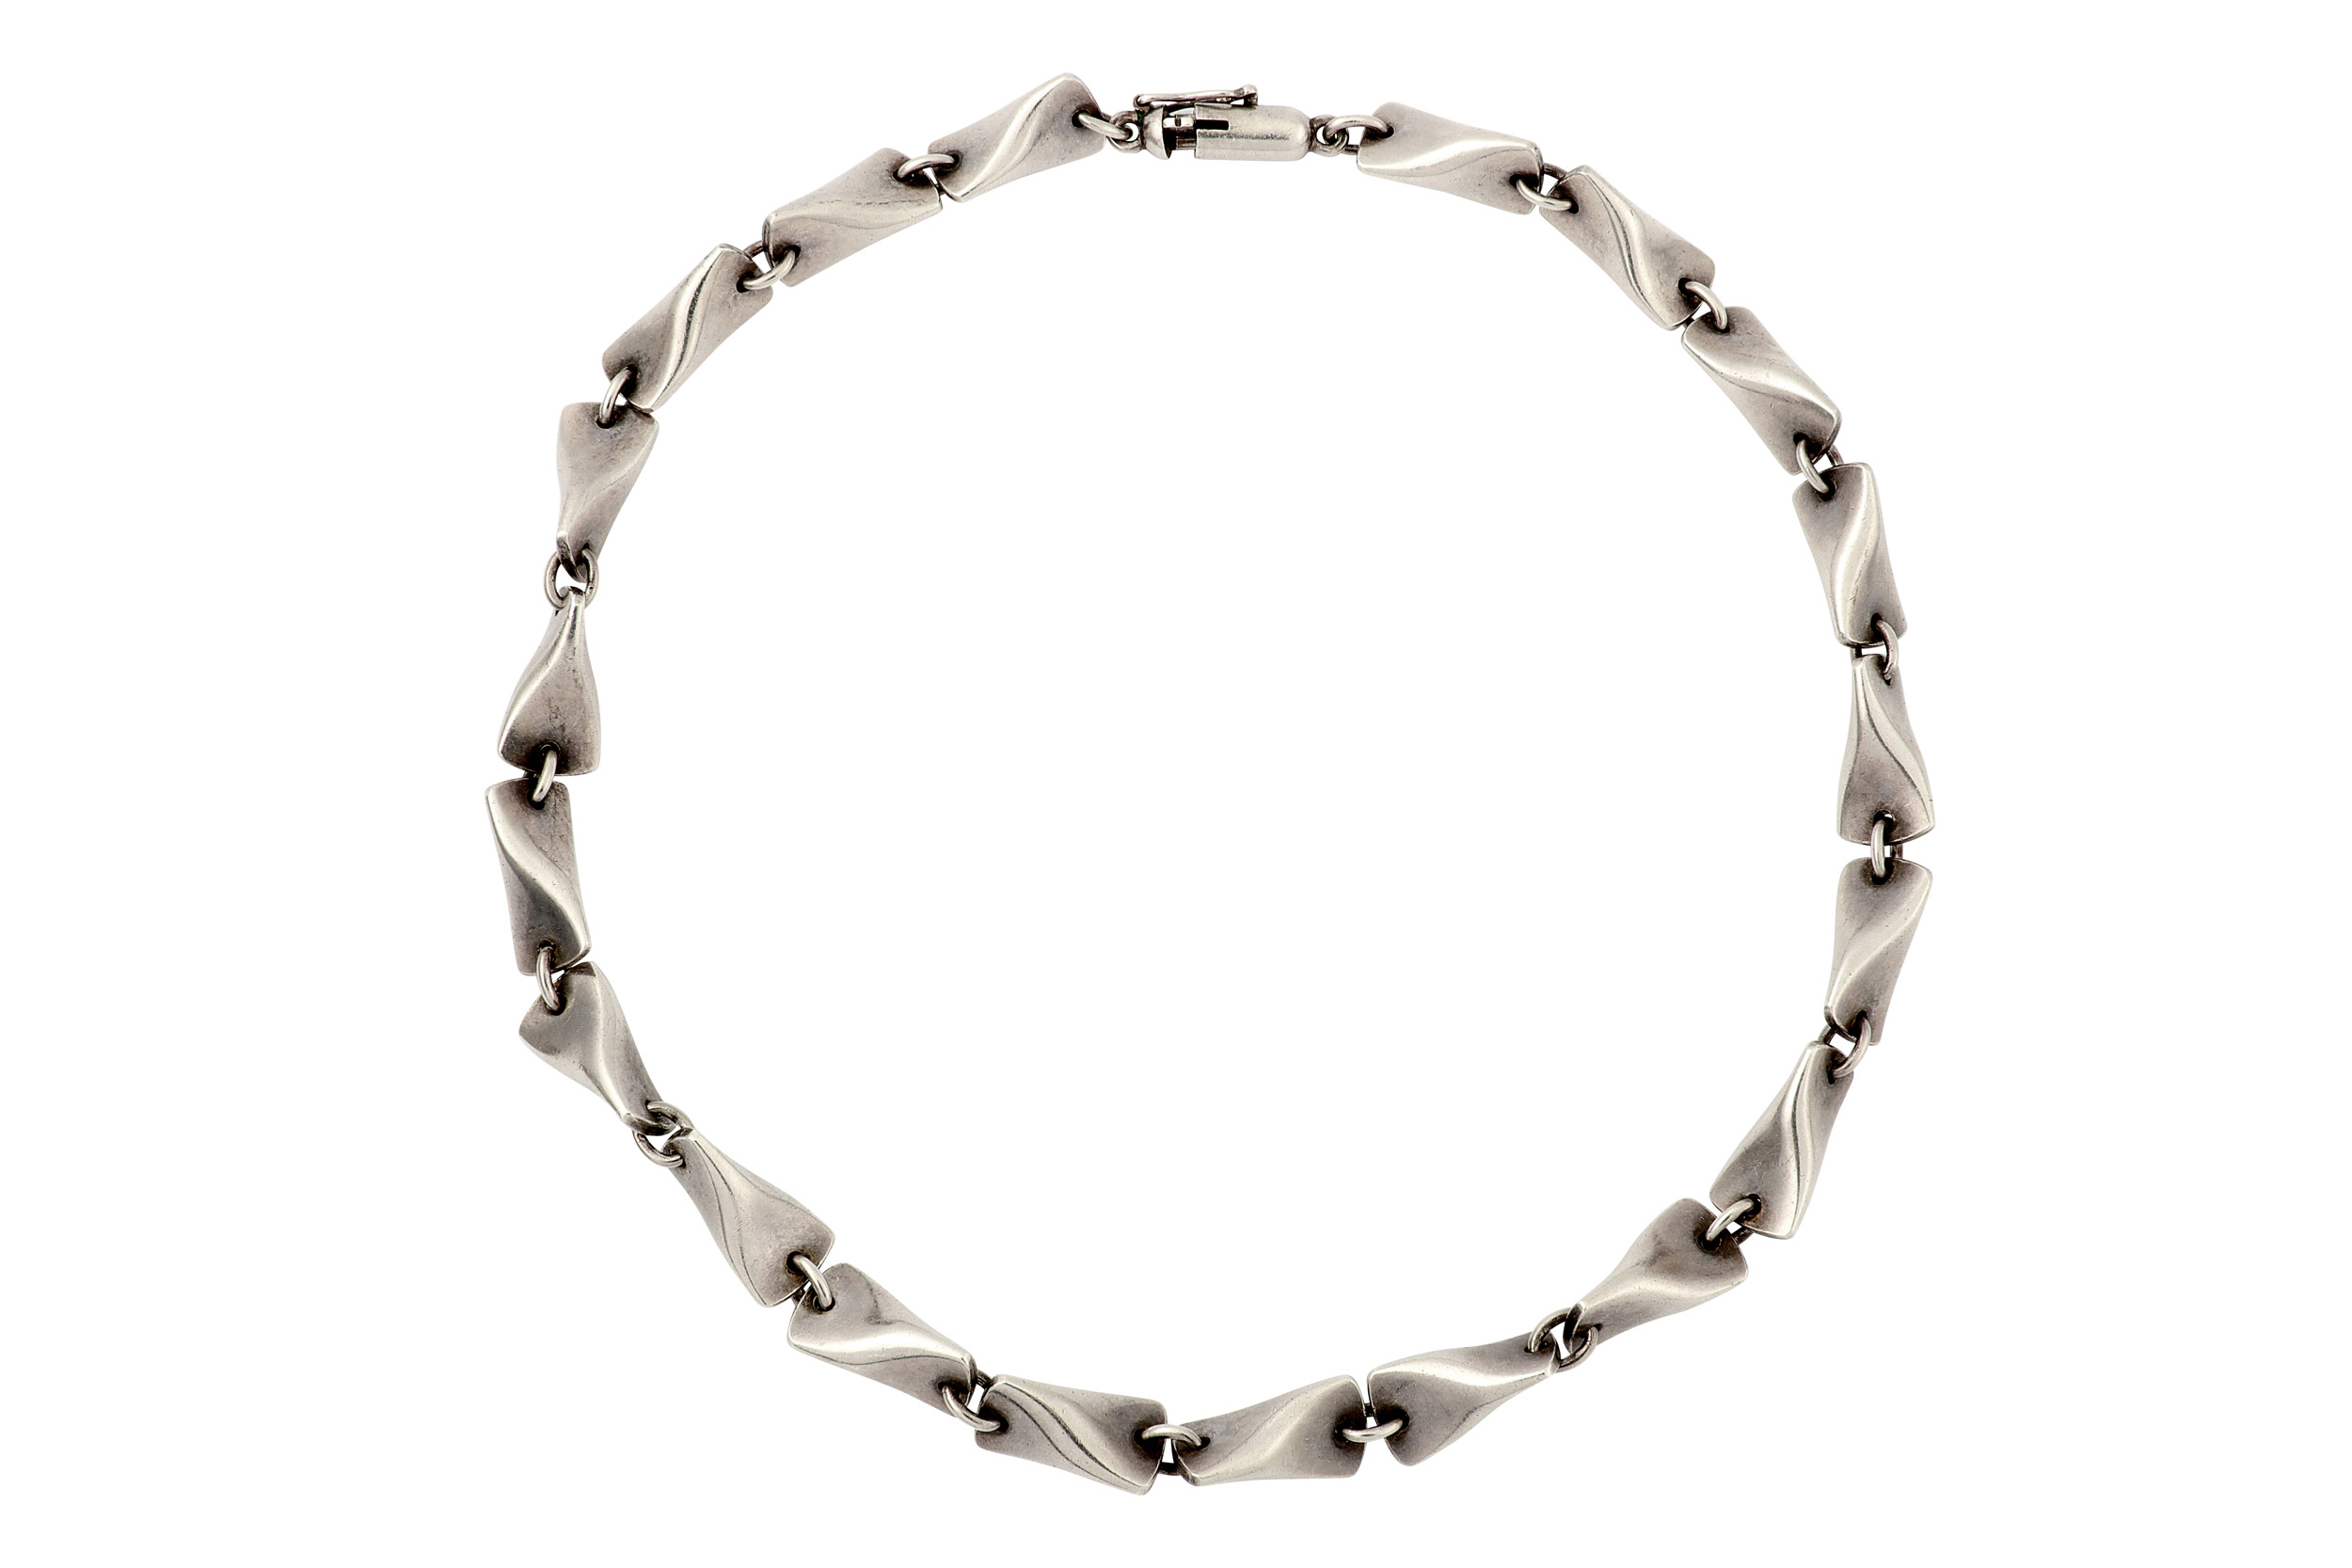 Lot 55 - A necklace and bracelet suite, by Kindt Larsen for Georg Jensen, circa 1950